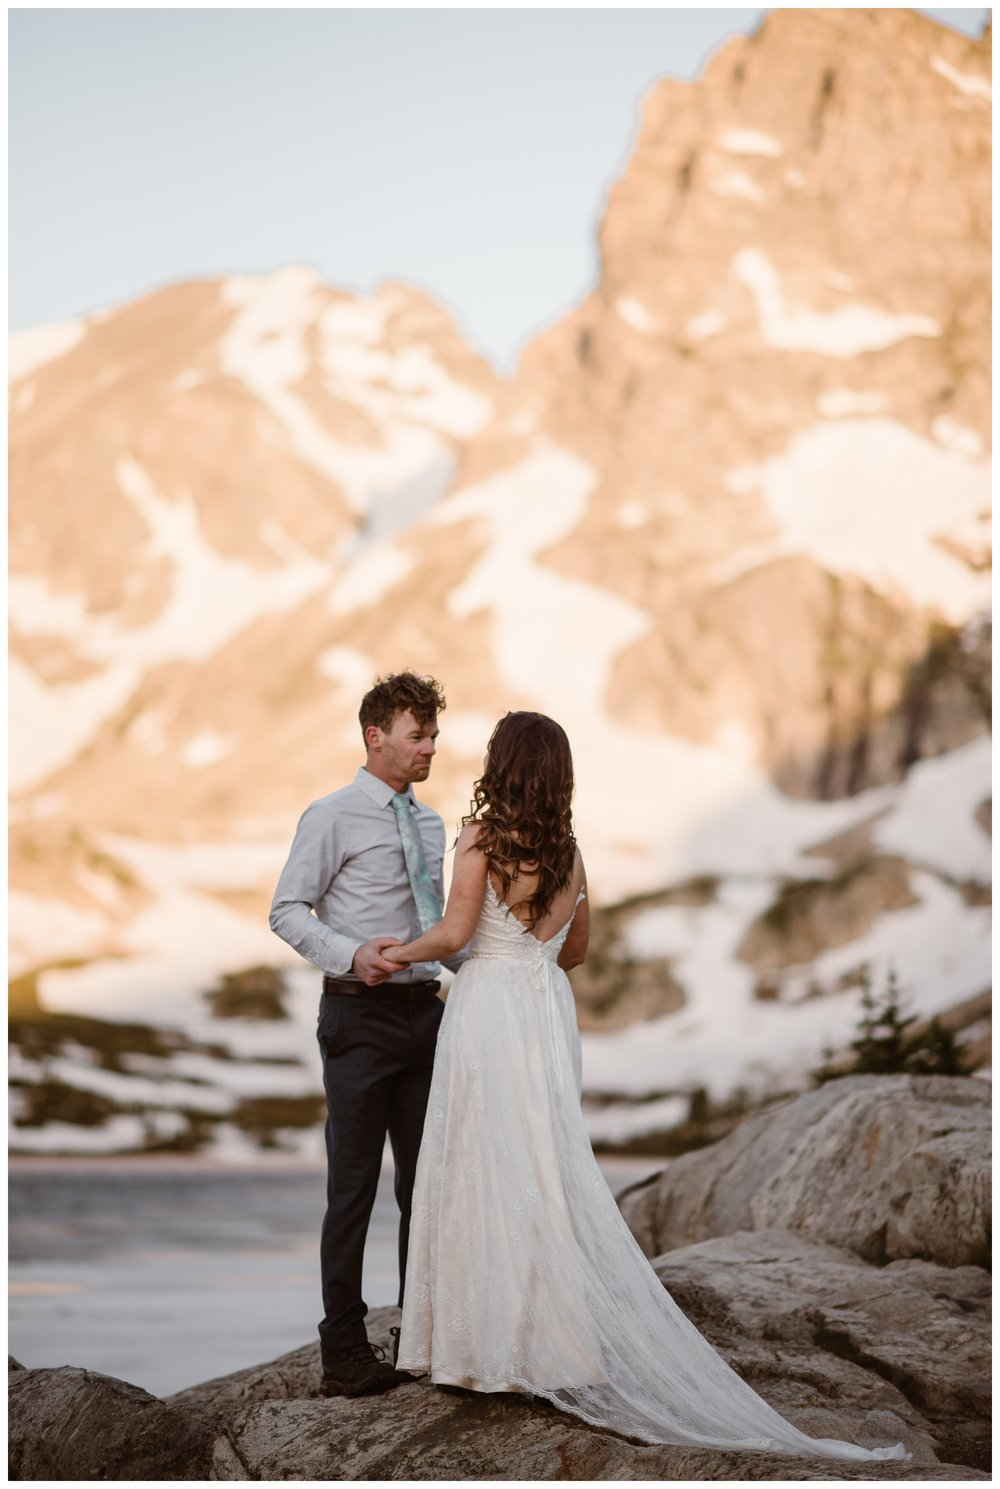 The mountains behind Lake Isabelle glow pink in the early morning dawn hour before Karen and Matt's adventure hiking elopement ceremony. Photo by Adventure Instead, Maddie Mae.